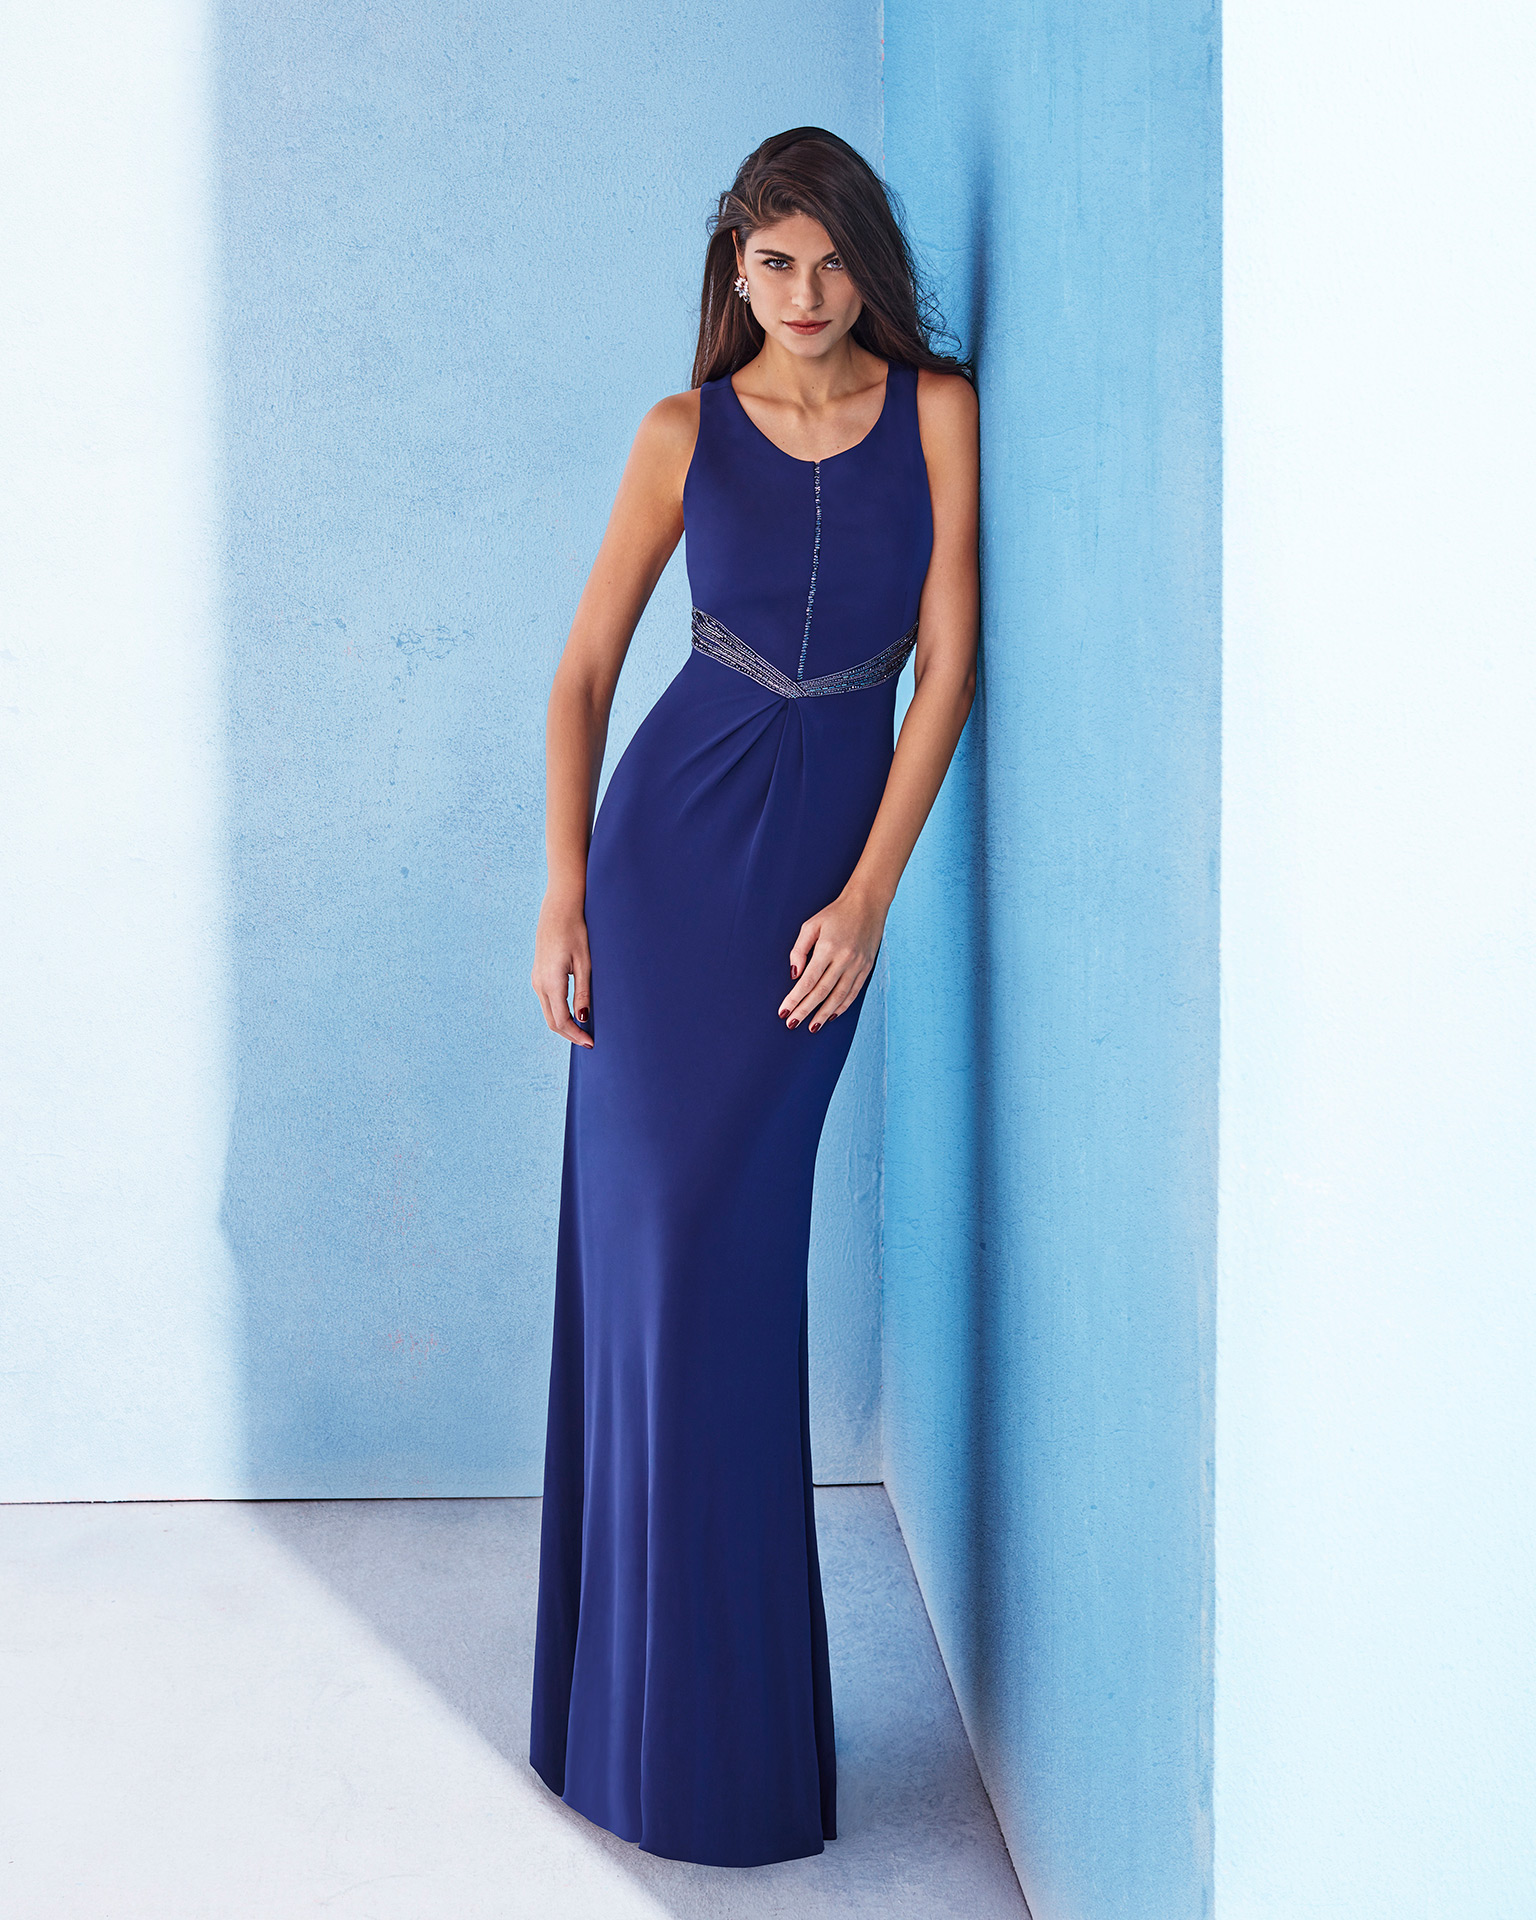 Long stretch crepe cocktail dress with round neckline and beading on waist. Available in smoke, navy blue and red. 2018 MARFIL BARCELONA Collection.